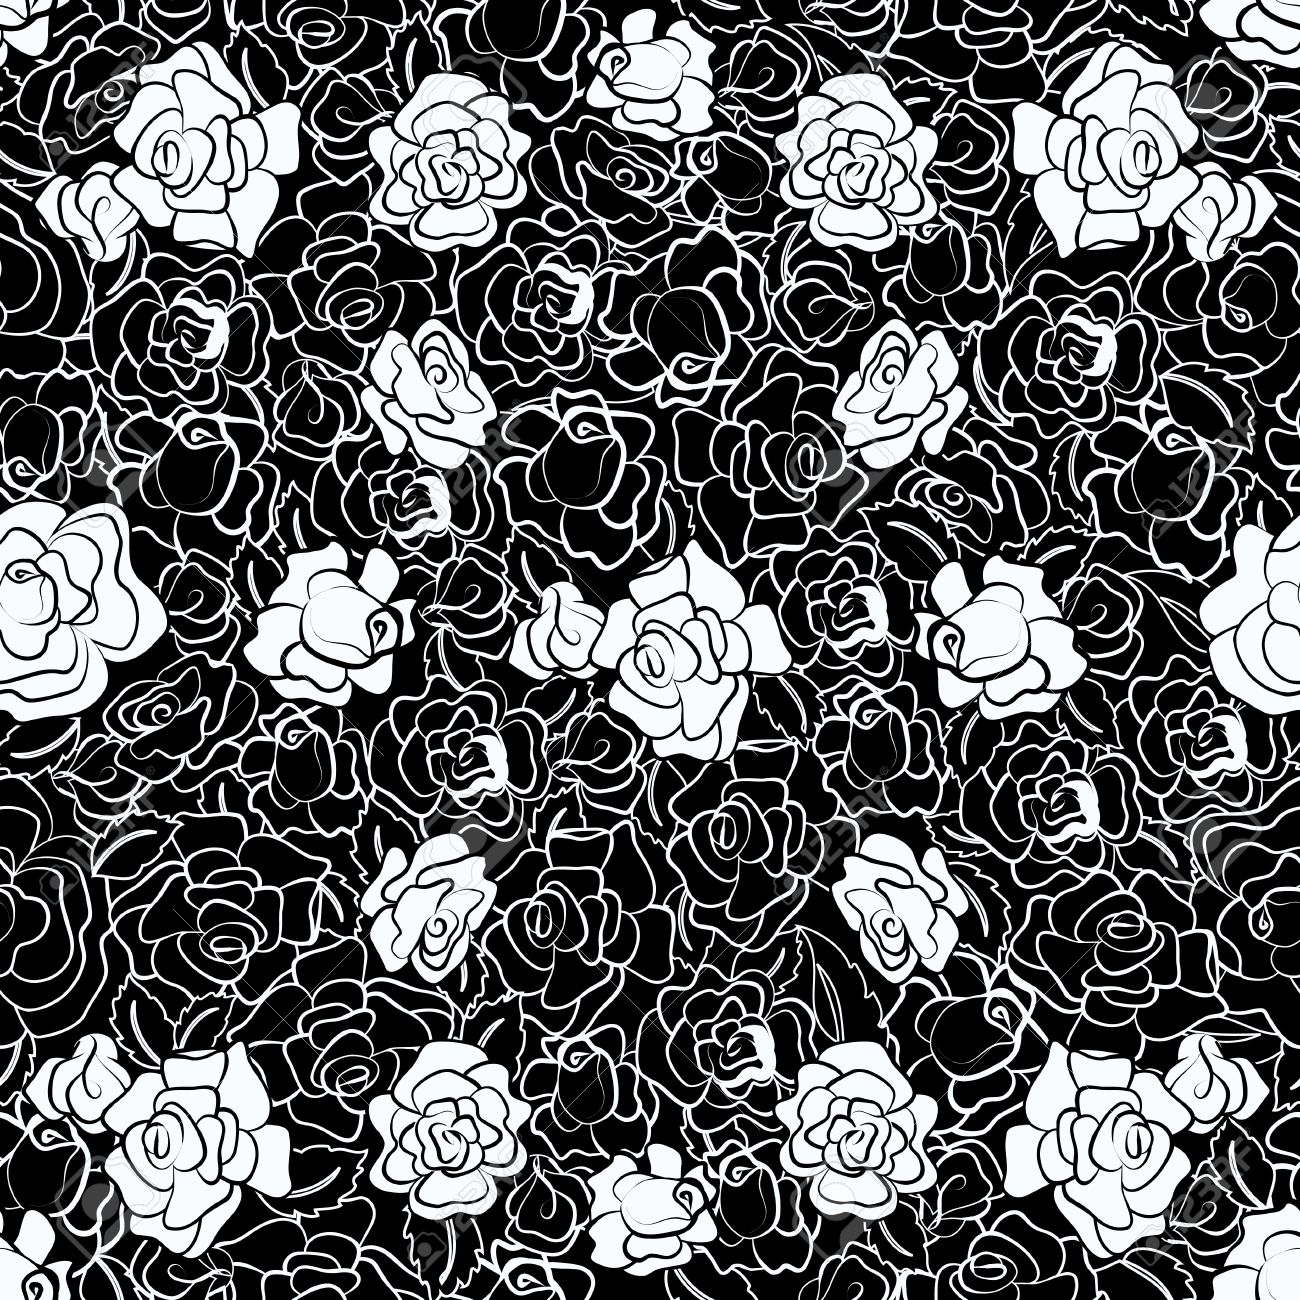 Black and White Rose Repeating Pattern Stock Vector - 9783305